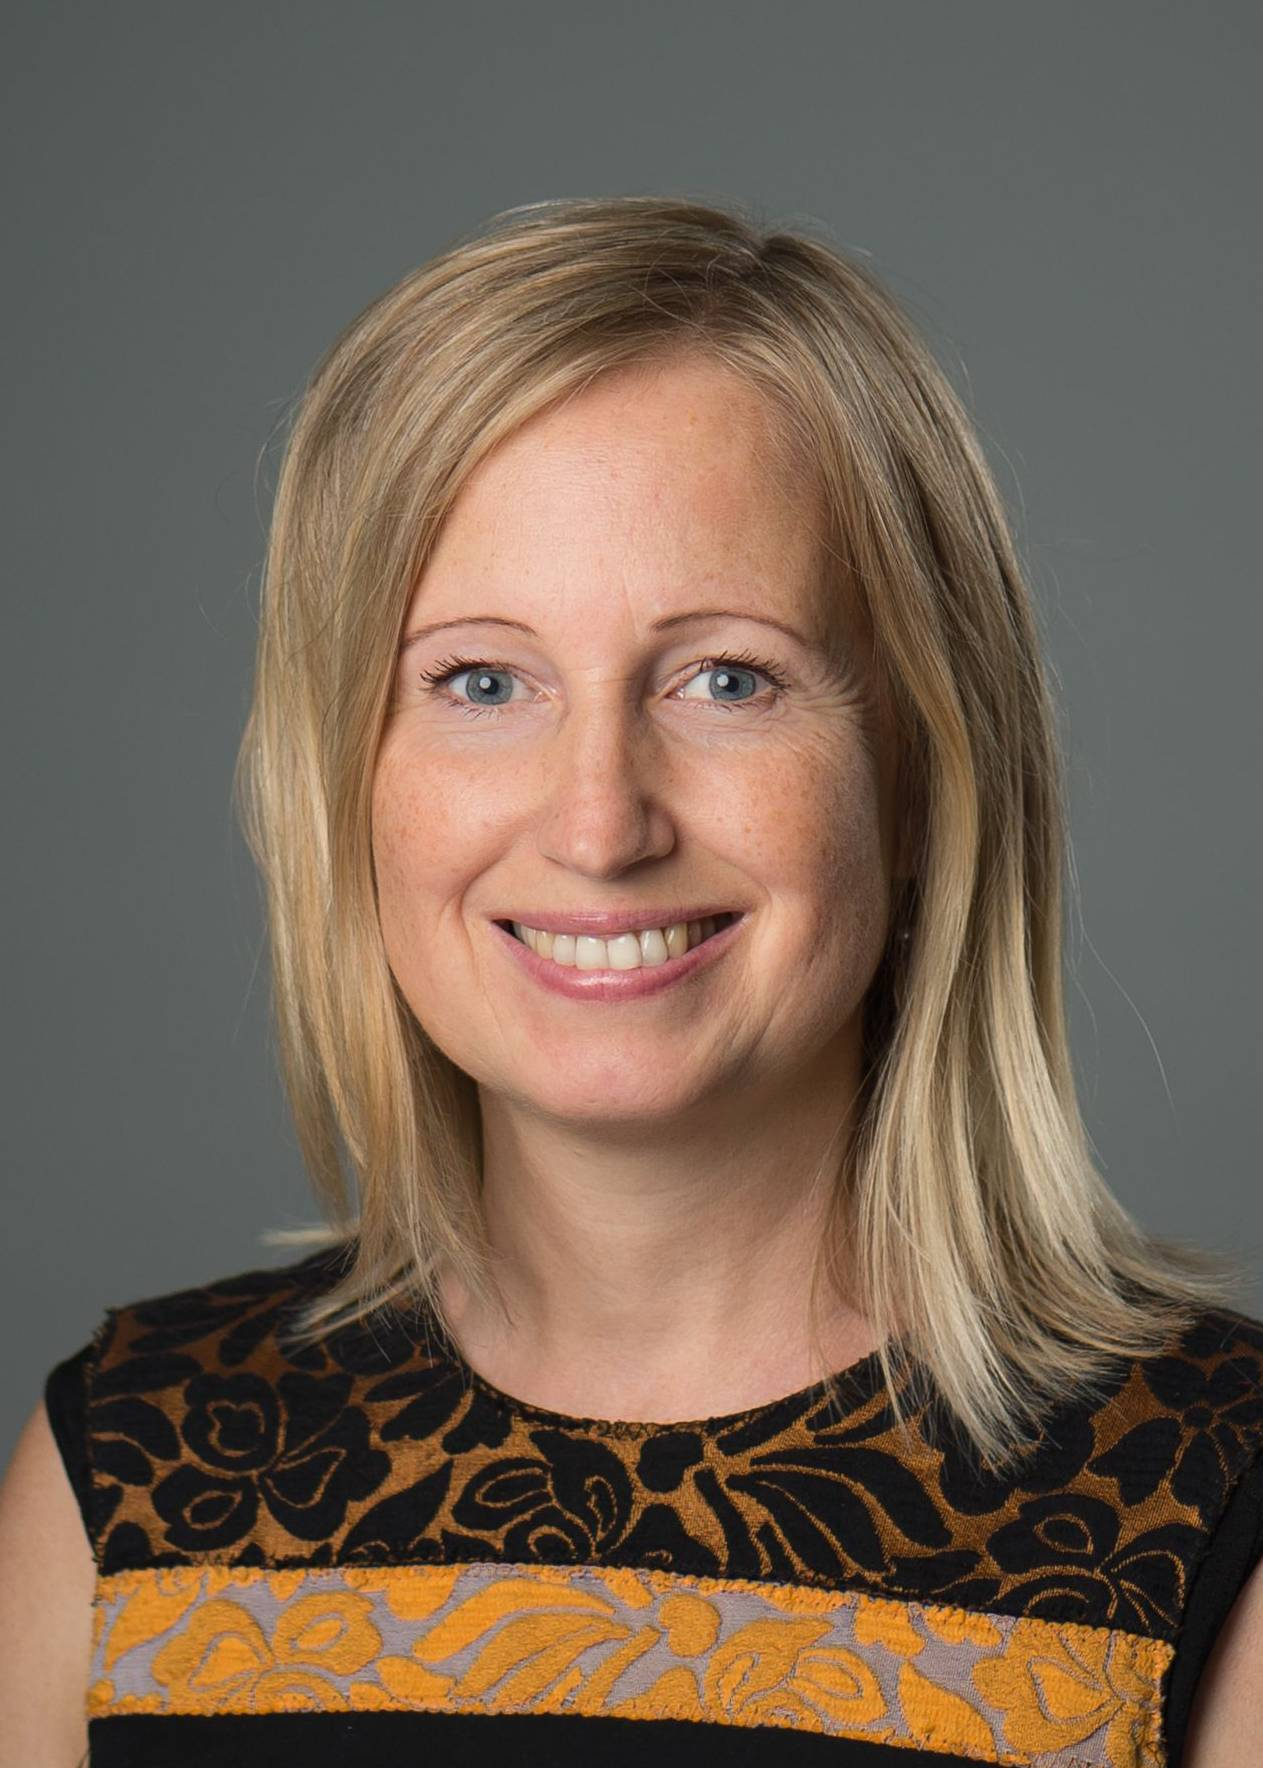 Dr. Christina Catherine Krause